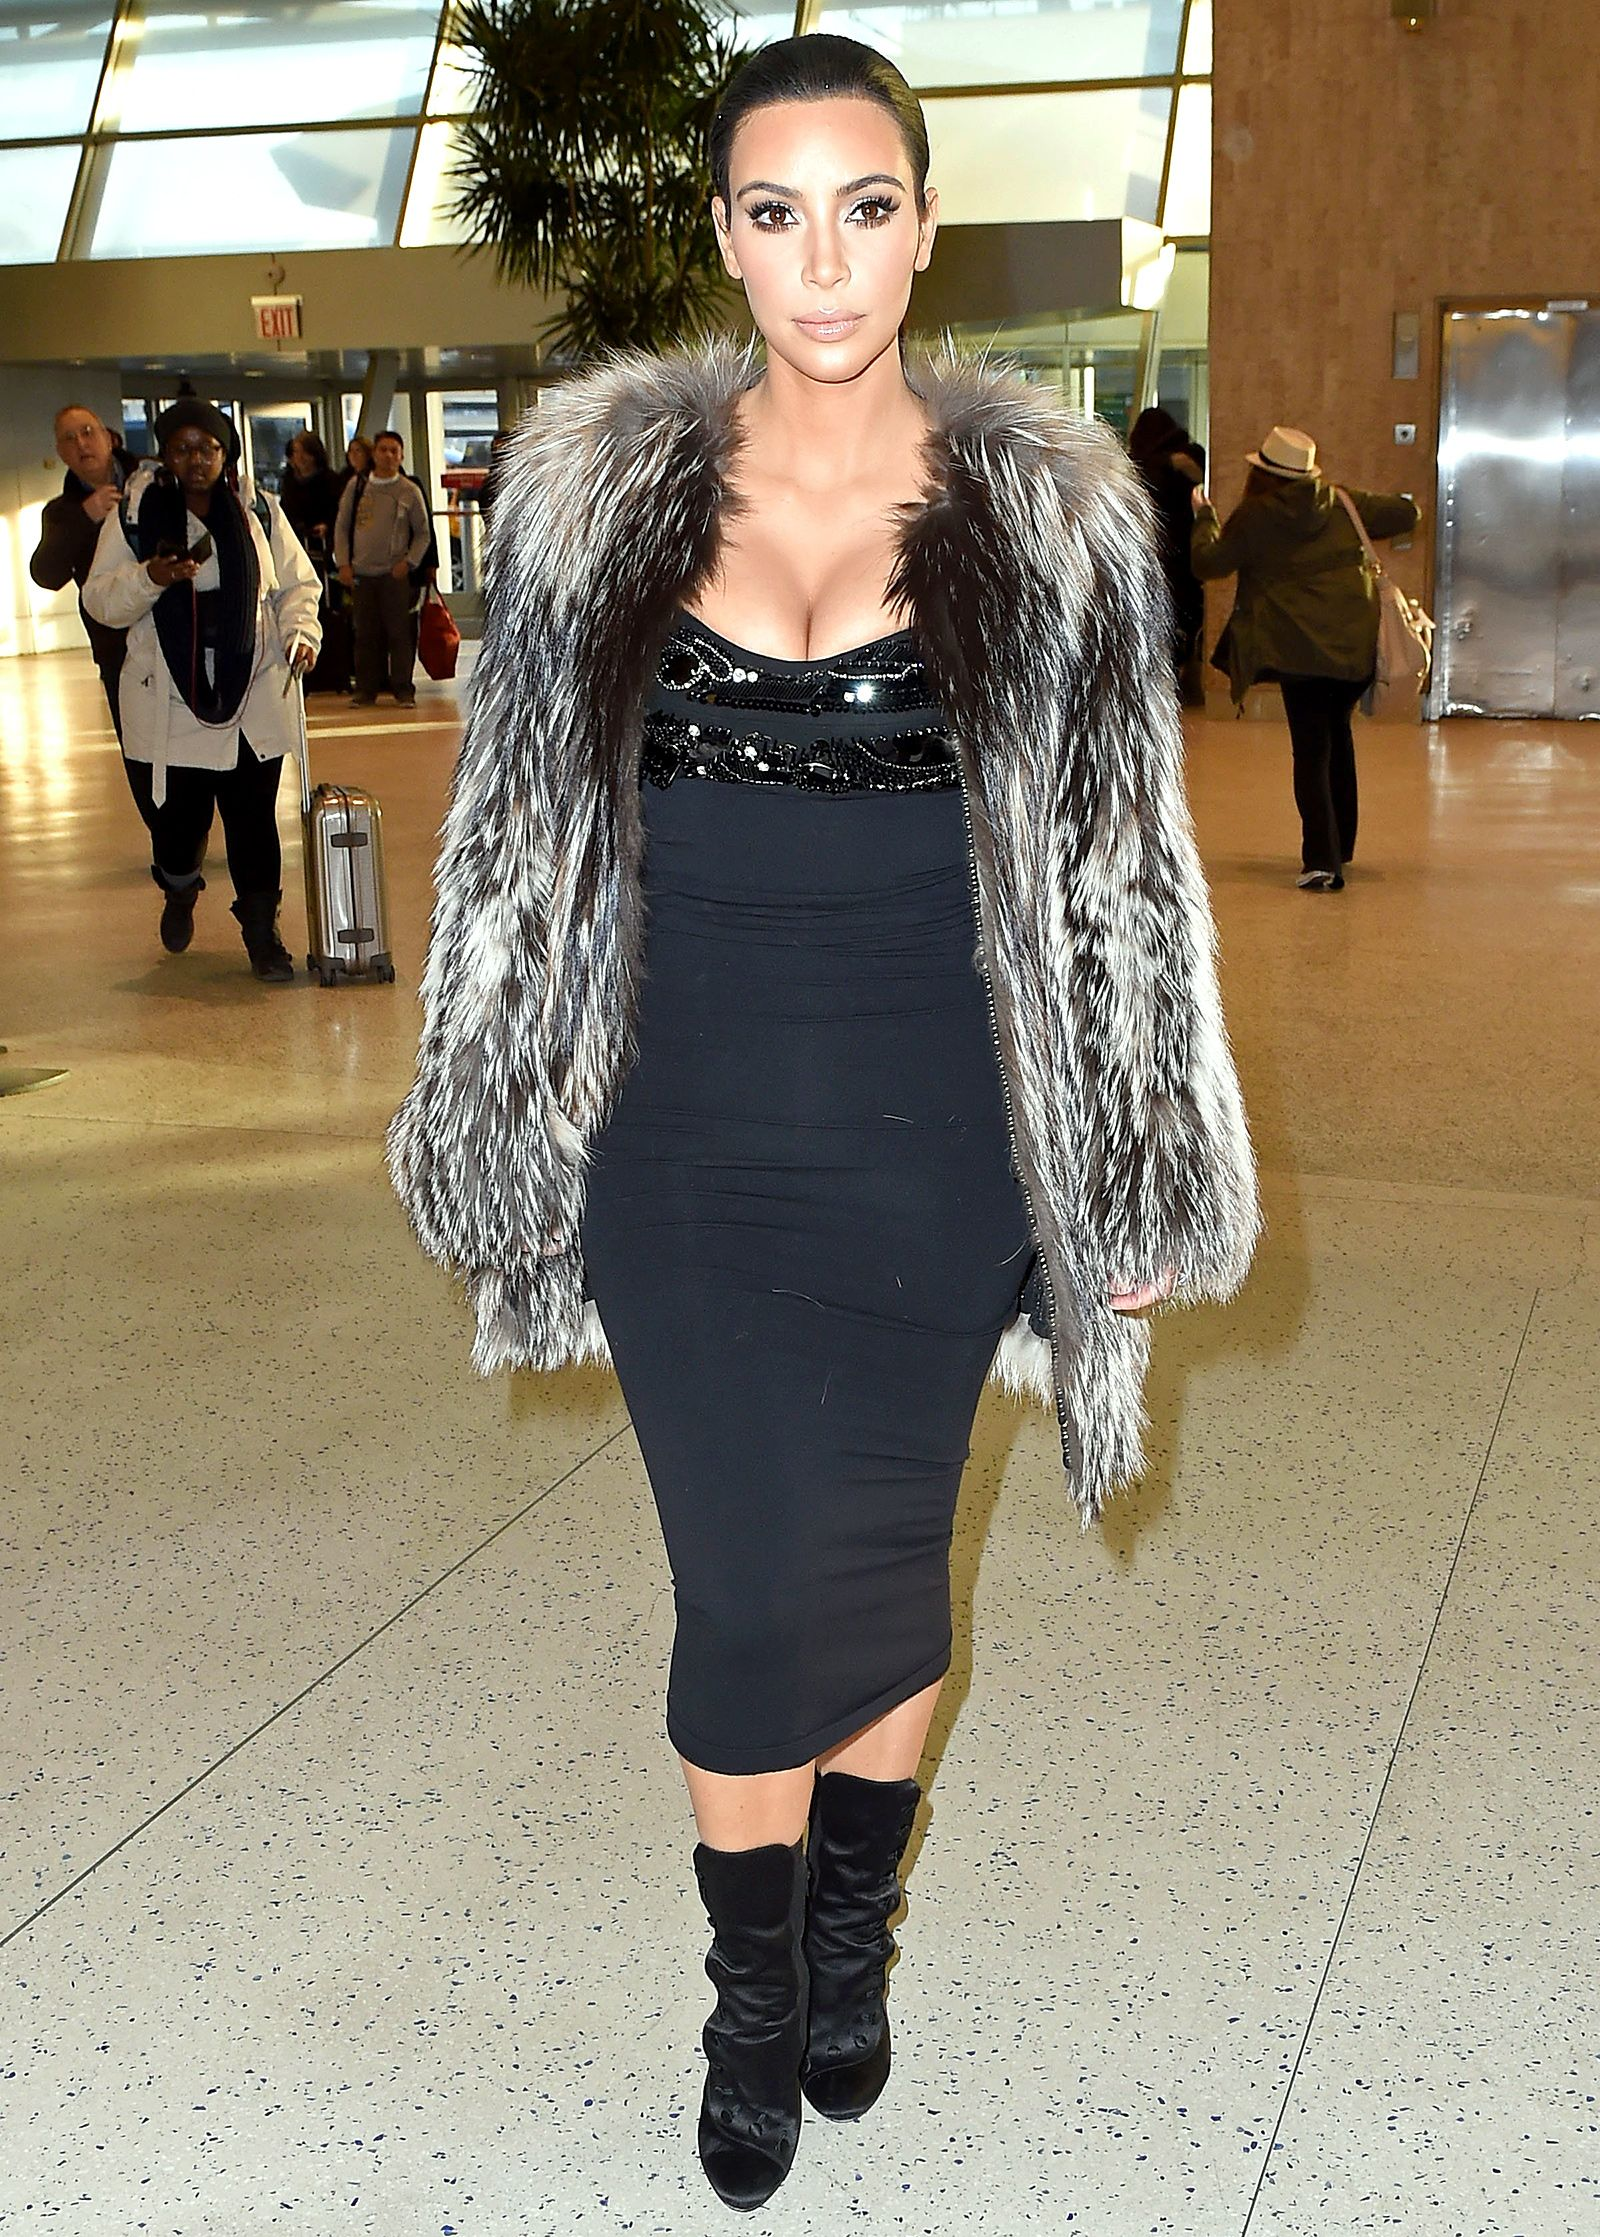 Kim Kardashian challenged the fashion norm by showing lots of cleavage in a black dress with